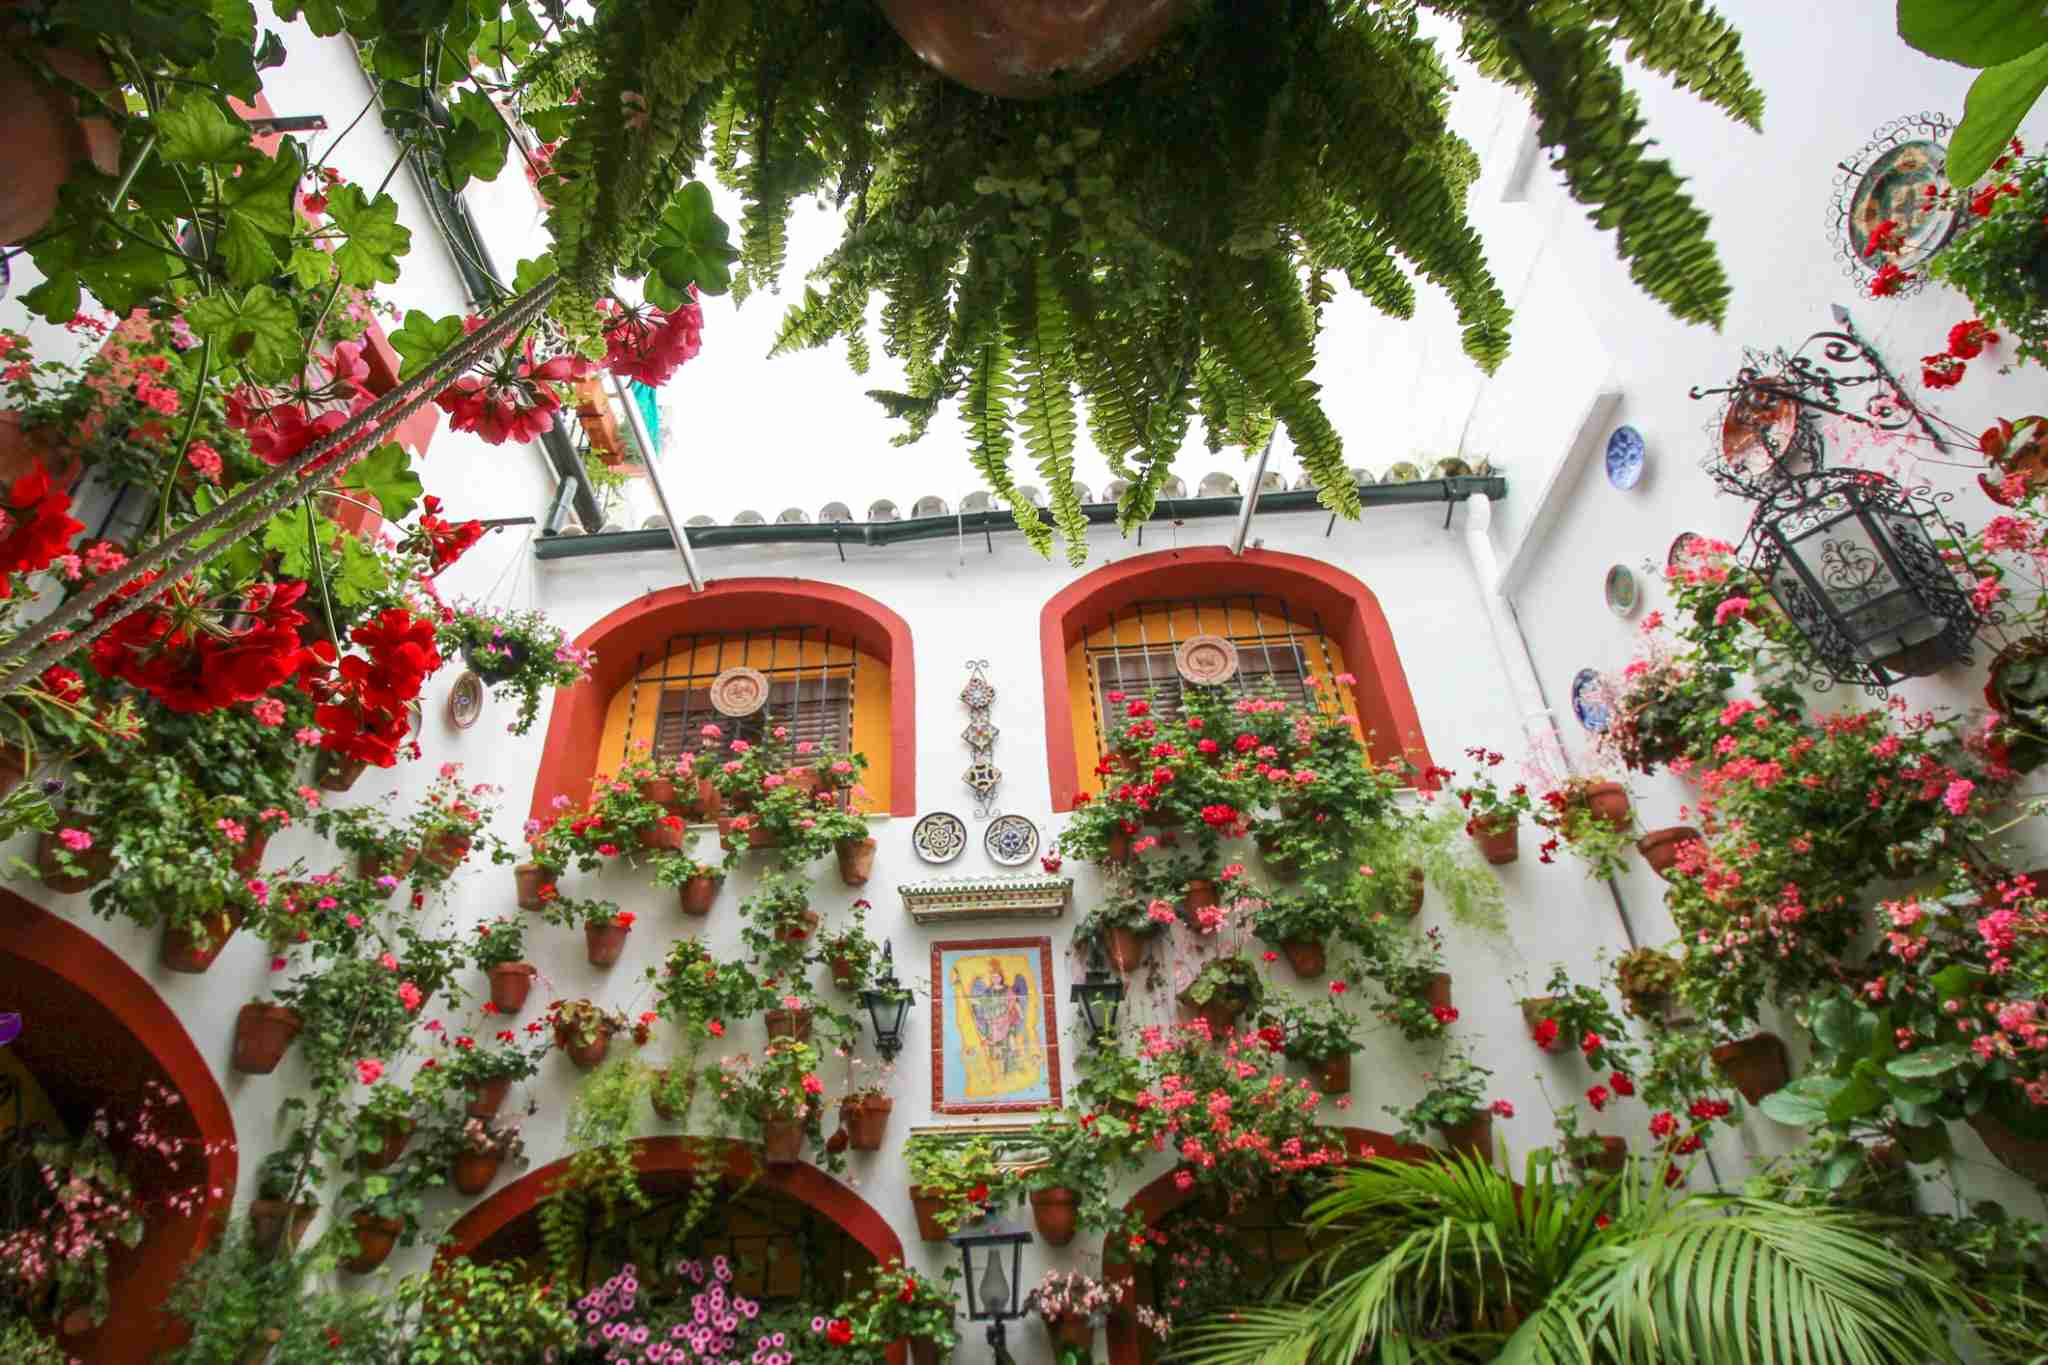 The Patios Festival is celebrated during the second and third week of May. Many houses of the historic centre open their private patios to the public and compete in a contest. Both the architectonic value and the floral decorations are taken into consideration to choose the winners. Cordoba, Andalusia, Spain